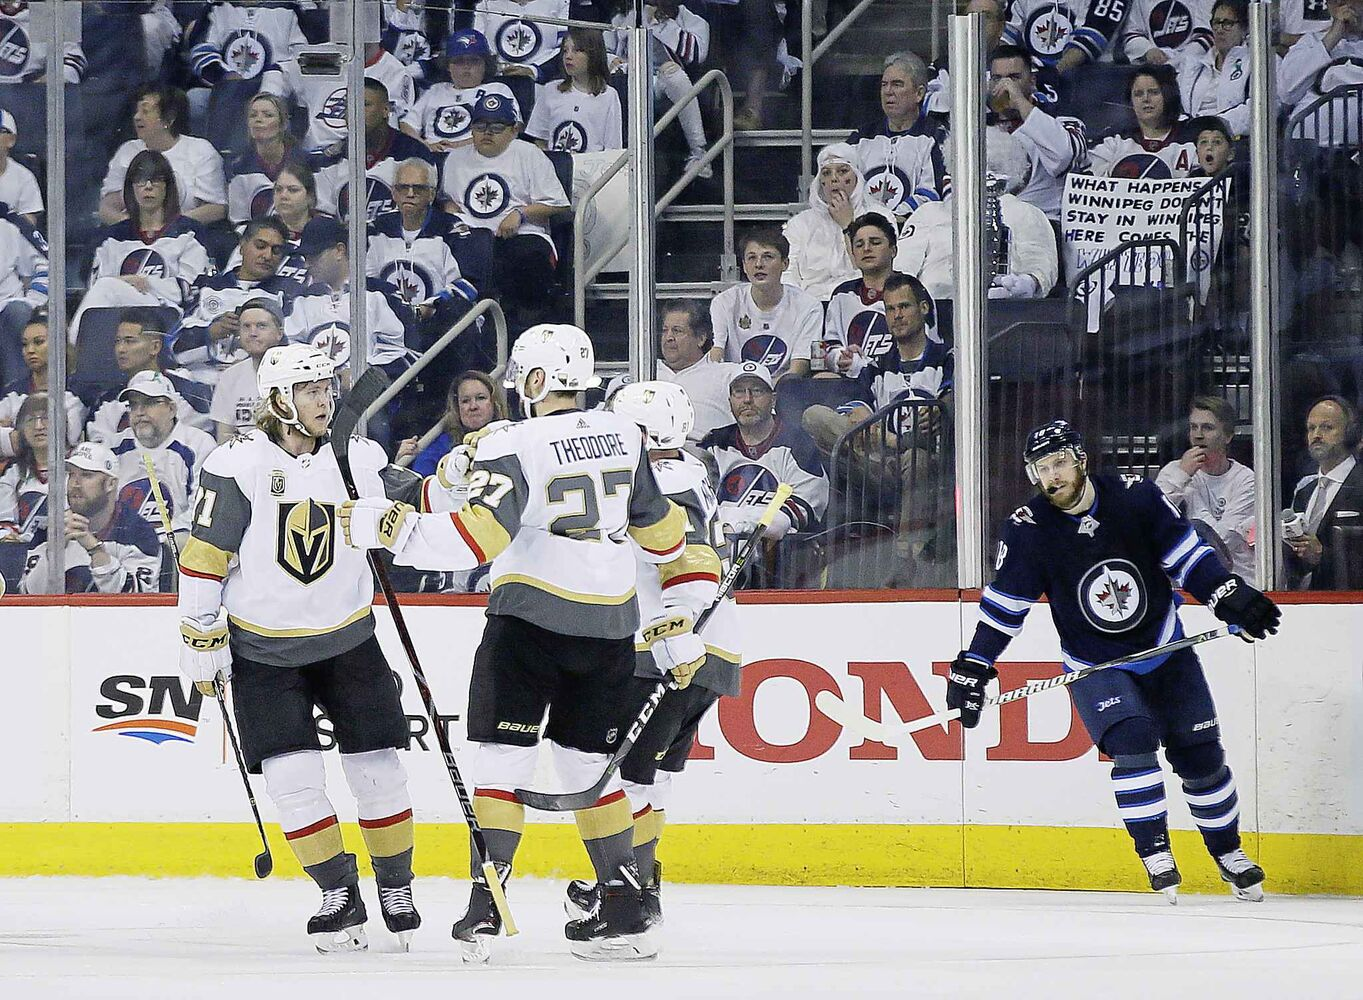 JOHN WOODS / THE CANADIAN PRESS</p><p>Vegas Golden Knights celebrate William Karlsson's (71) goal against the Winnipeg Jets during second period of game one action in the NHL Western Conference Final in Winnipeg on Saturday, May 12, 2018.</p> (CP)